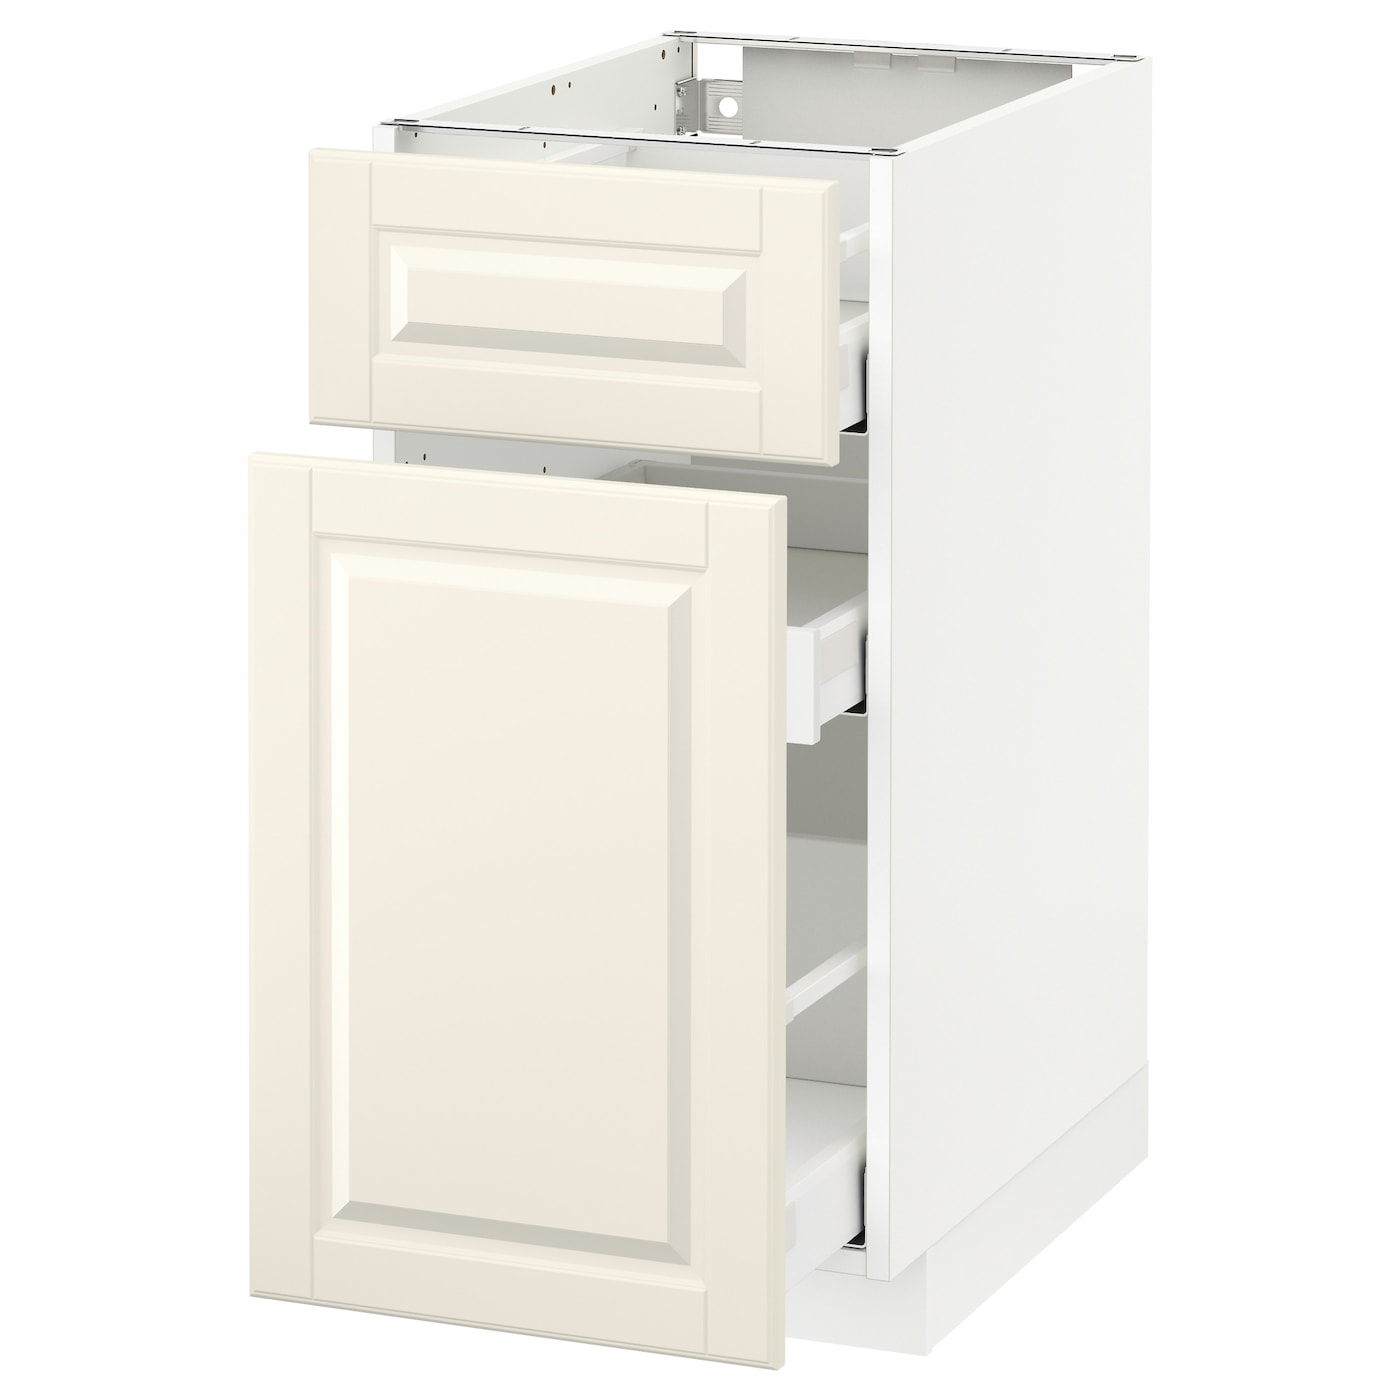 metod maximera base cabinet p out storage drawer white bodbyn off white 40x60 cm ikea. Black Bedroom Furniture Sets. Home Design Ideas